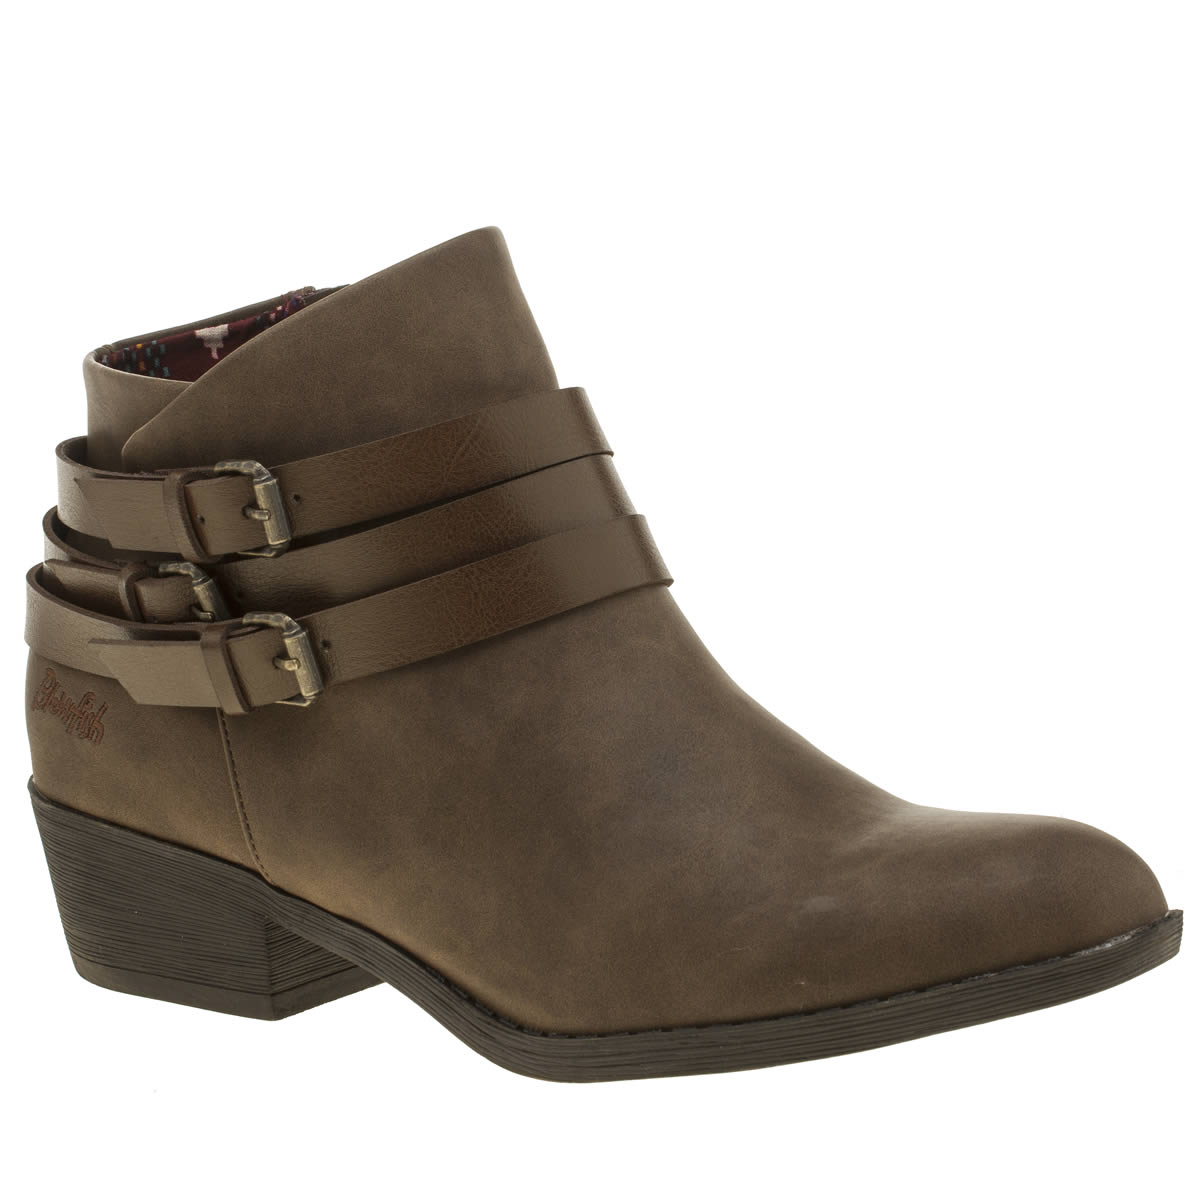 Womens Boots | Flat & Heeled Ankle & Knee High Boots | schuh